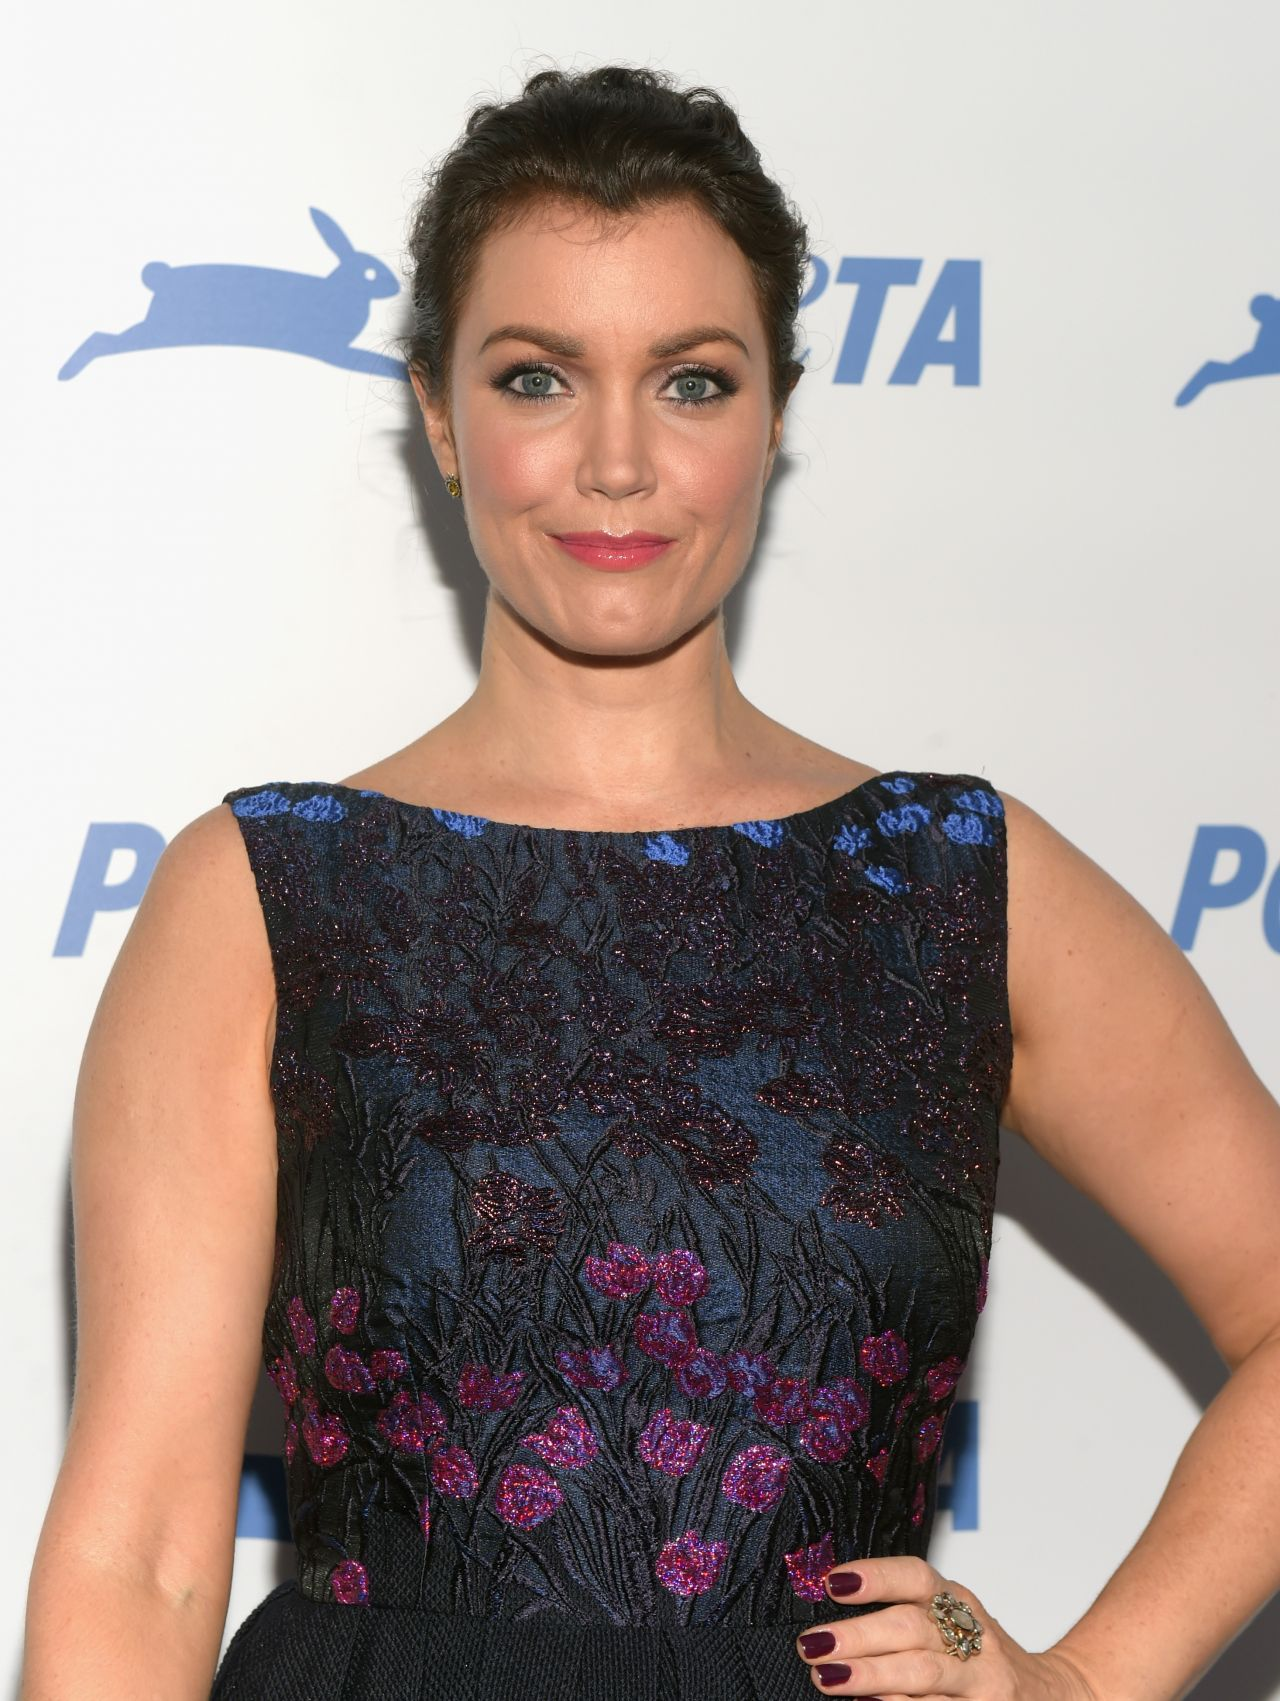 bellamy-young-peta-s-35th-anniversary-party-in-los-angeles_3